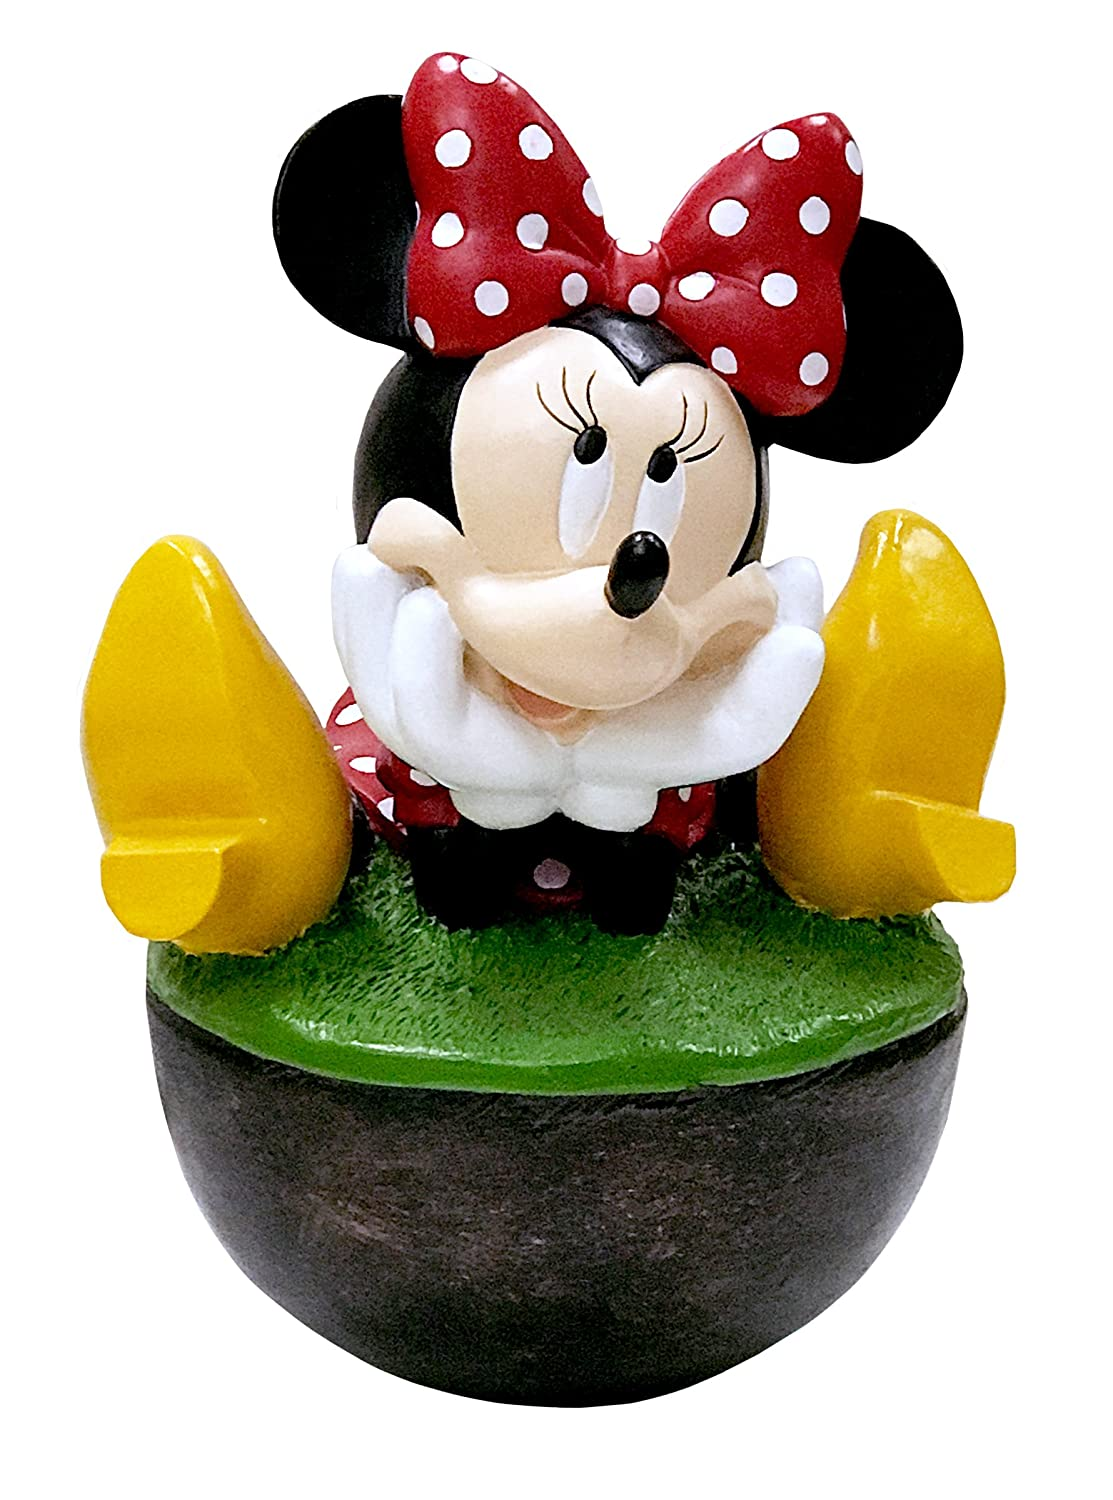 Design International Group Minnie Wobble, Garden Statue (LDG89735)